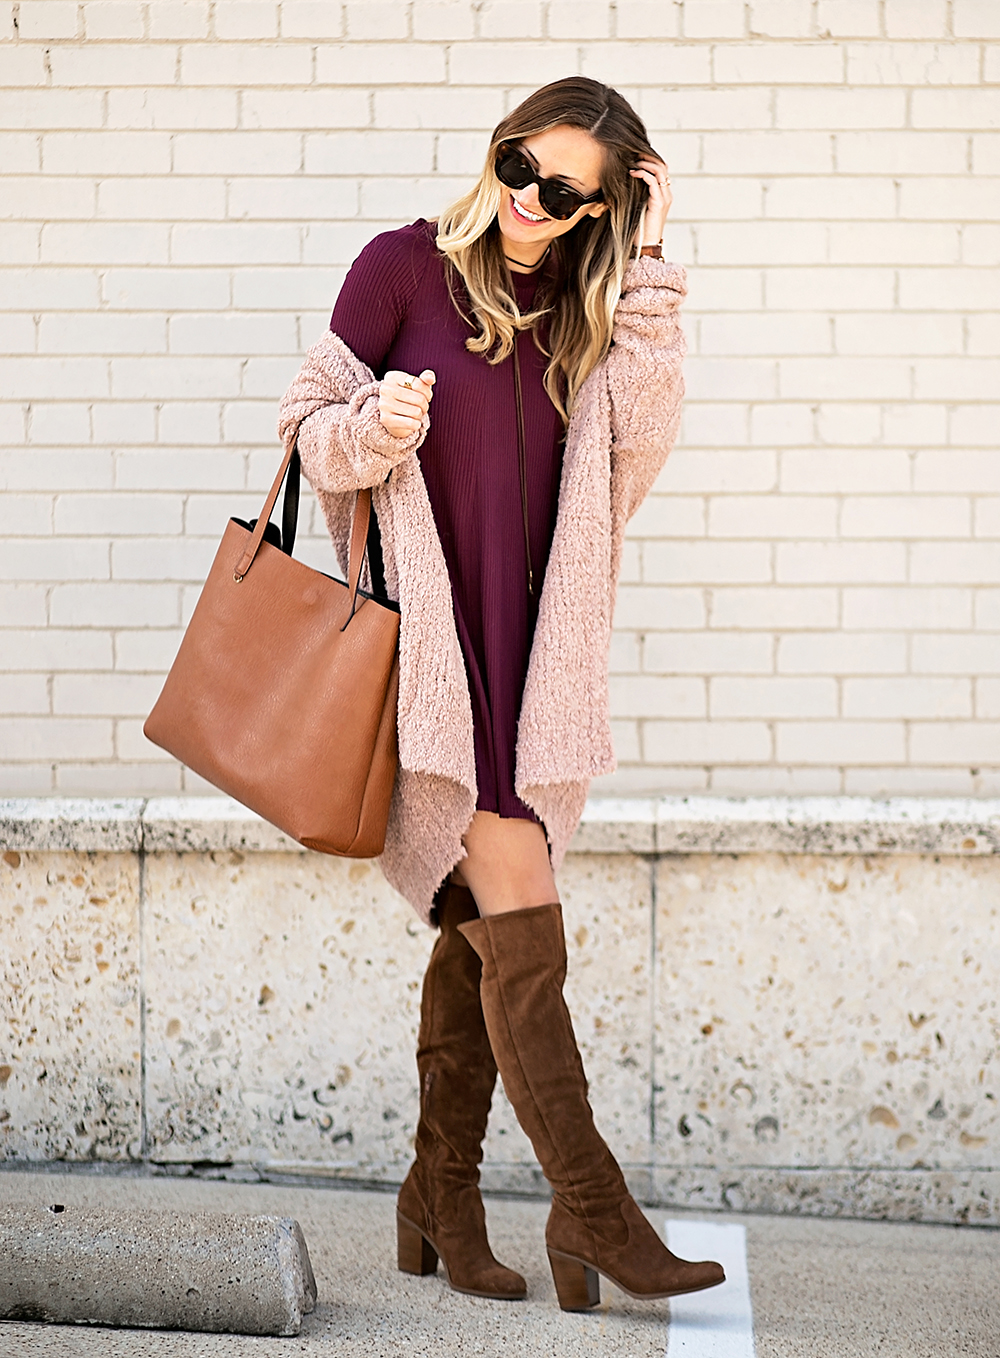 livvyland-blog-olivia-watson-cozy-fall-layers-dress-otk-boots-chunky-knit-cardigan-blush-pink-boho-outfit-10